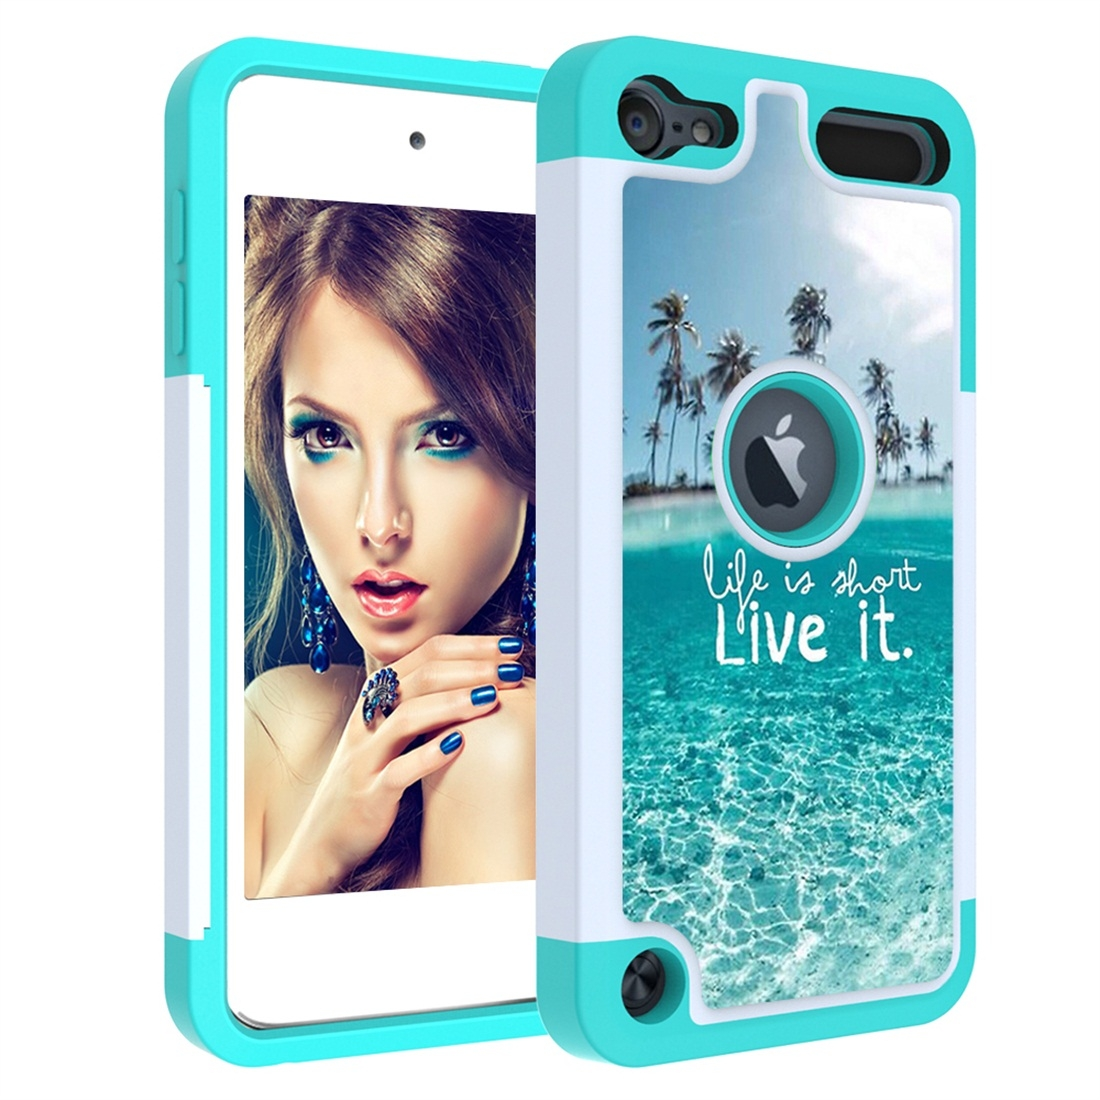 Colorful  Design PC/Protective Durable Casing for iPod touch 5/ 6/ 7 (2019) (Ocean)